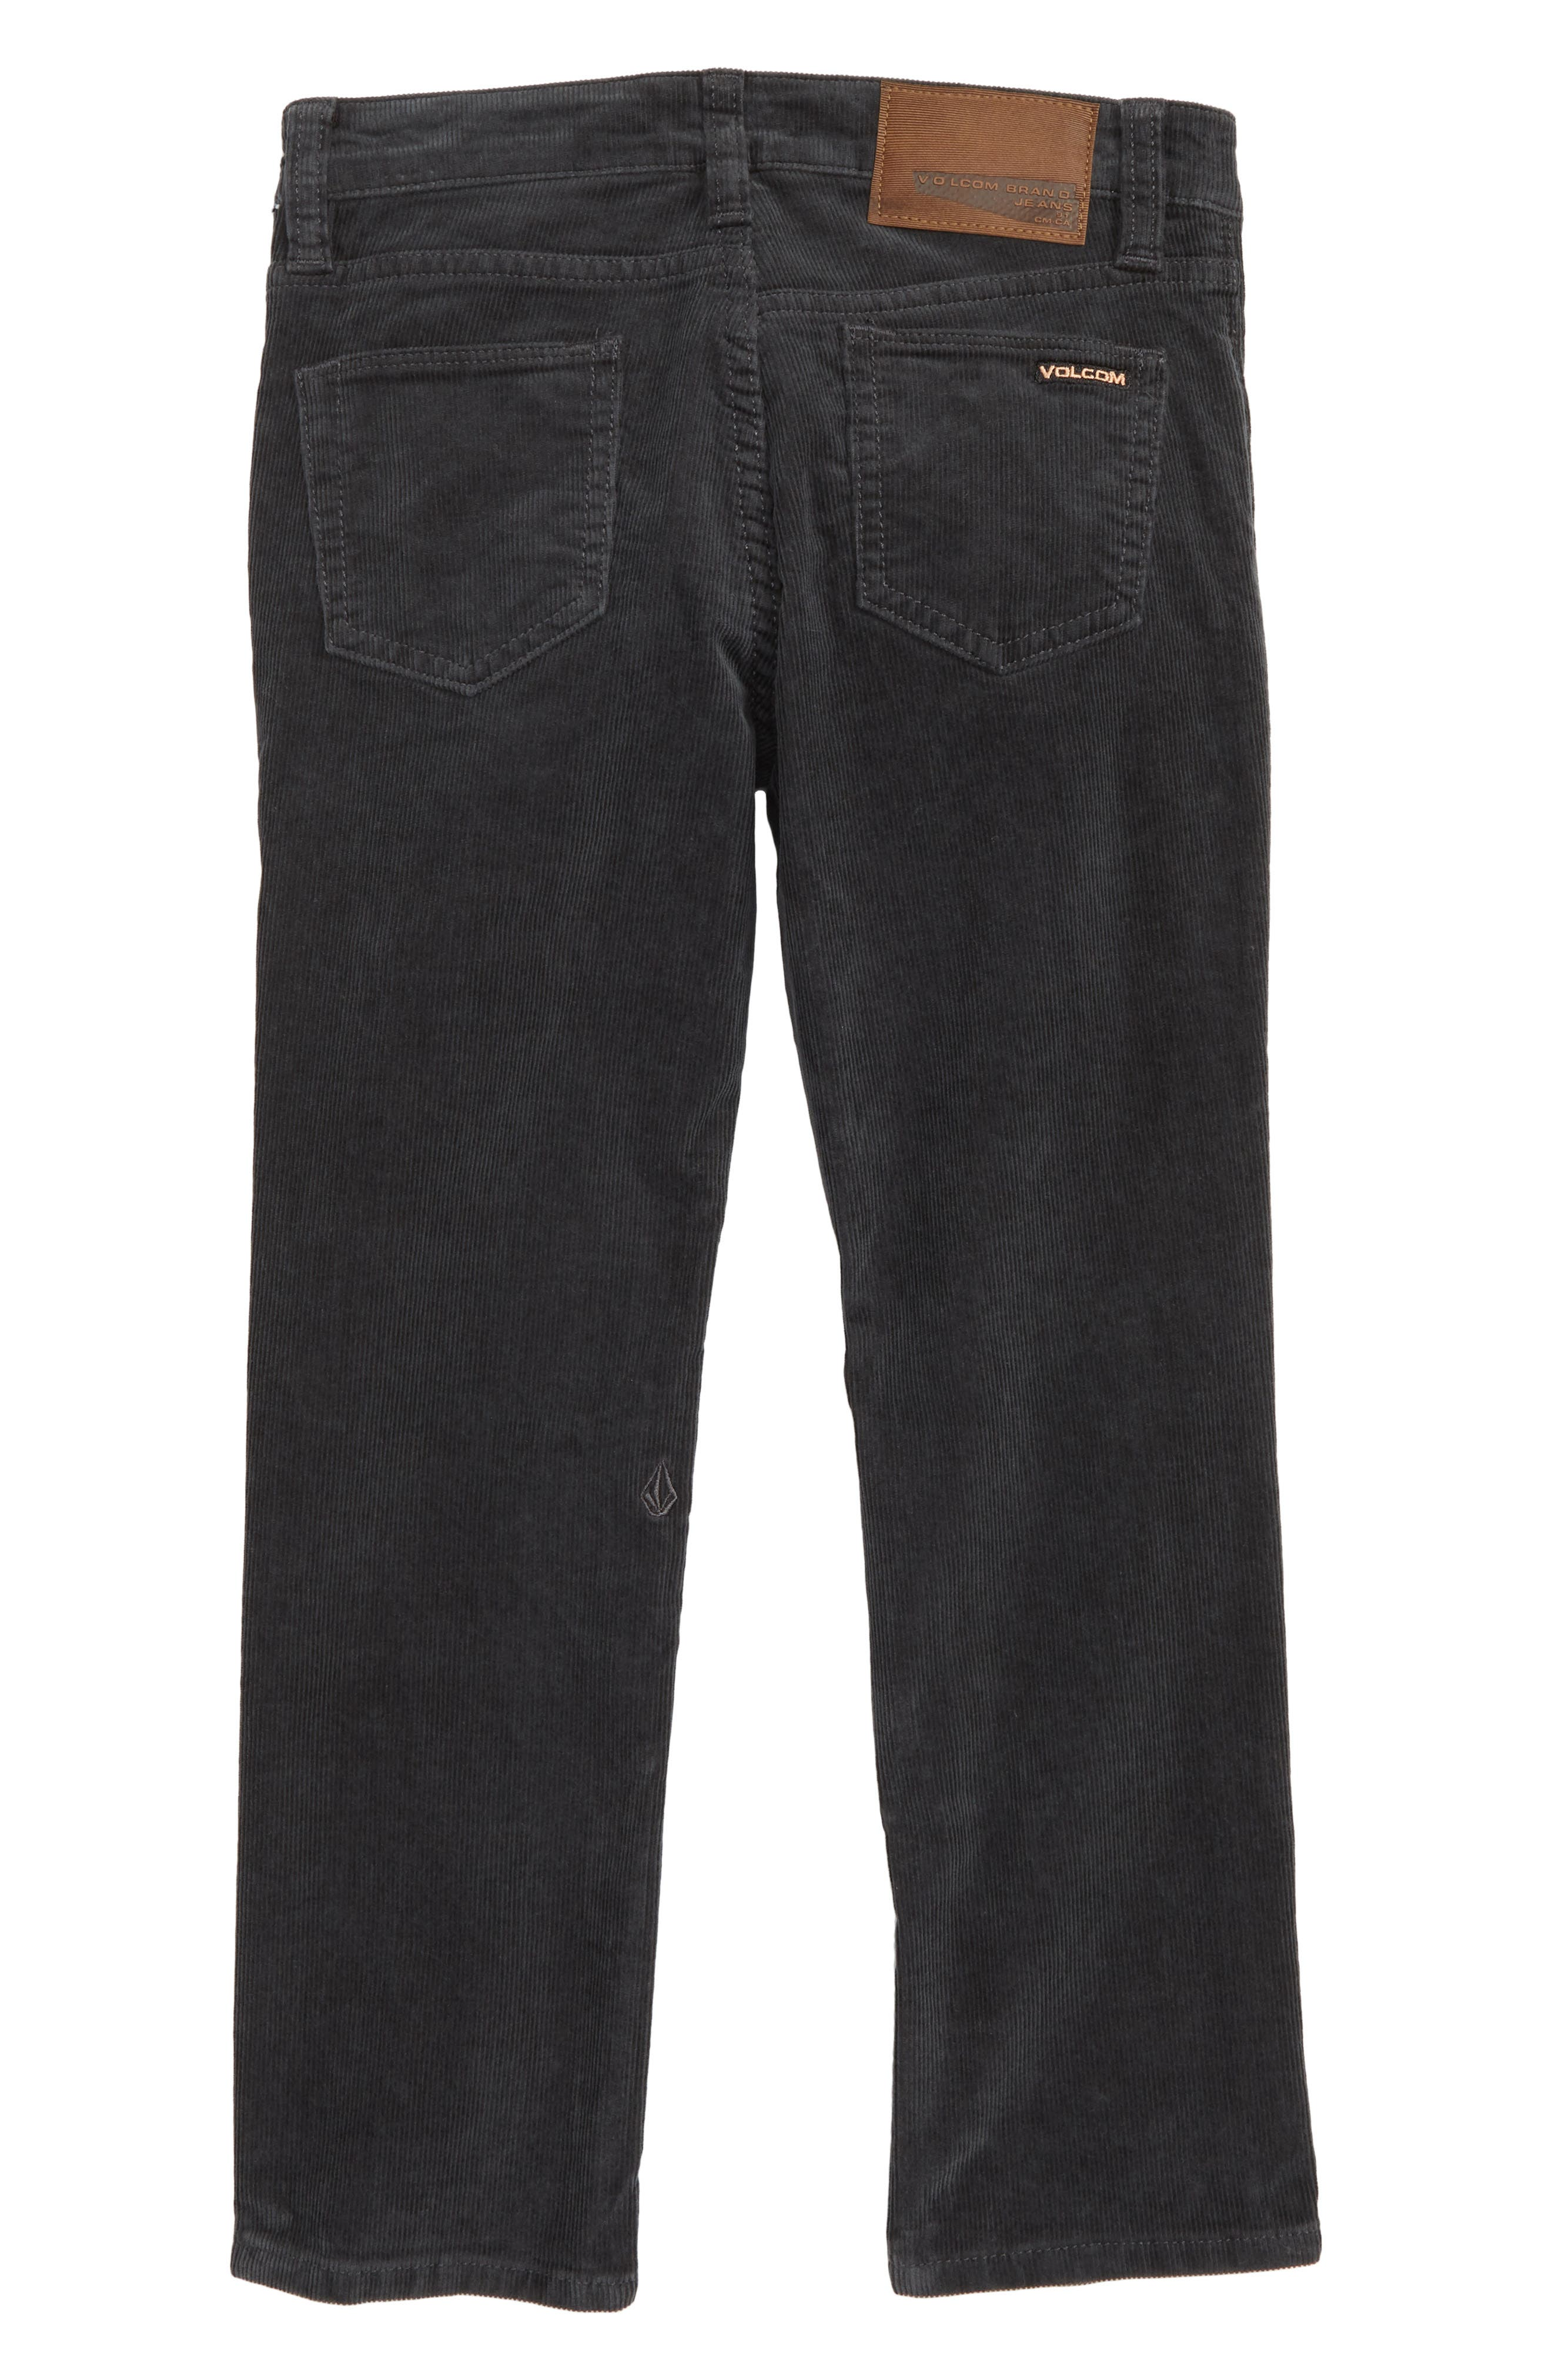 Vorta Slim Fit Corduroy Jeans,                             Alternate thumbnail 2, color,                             STEALTH